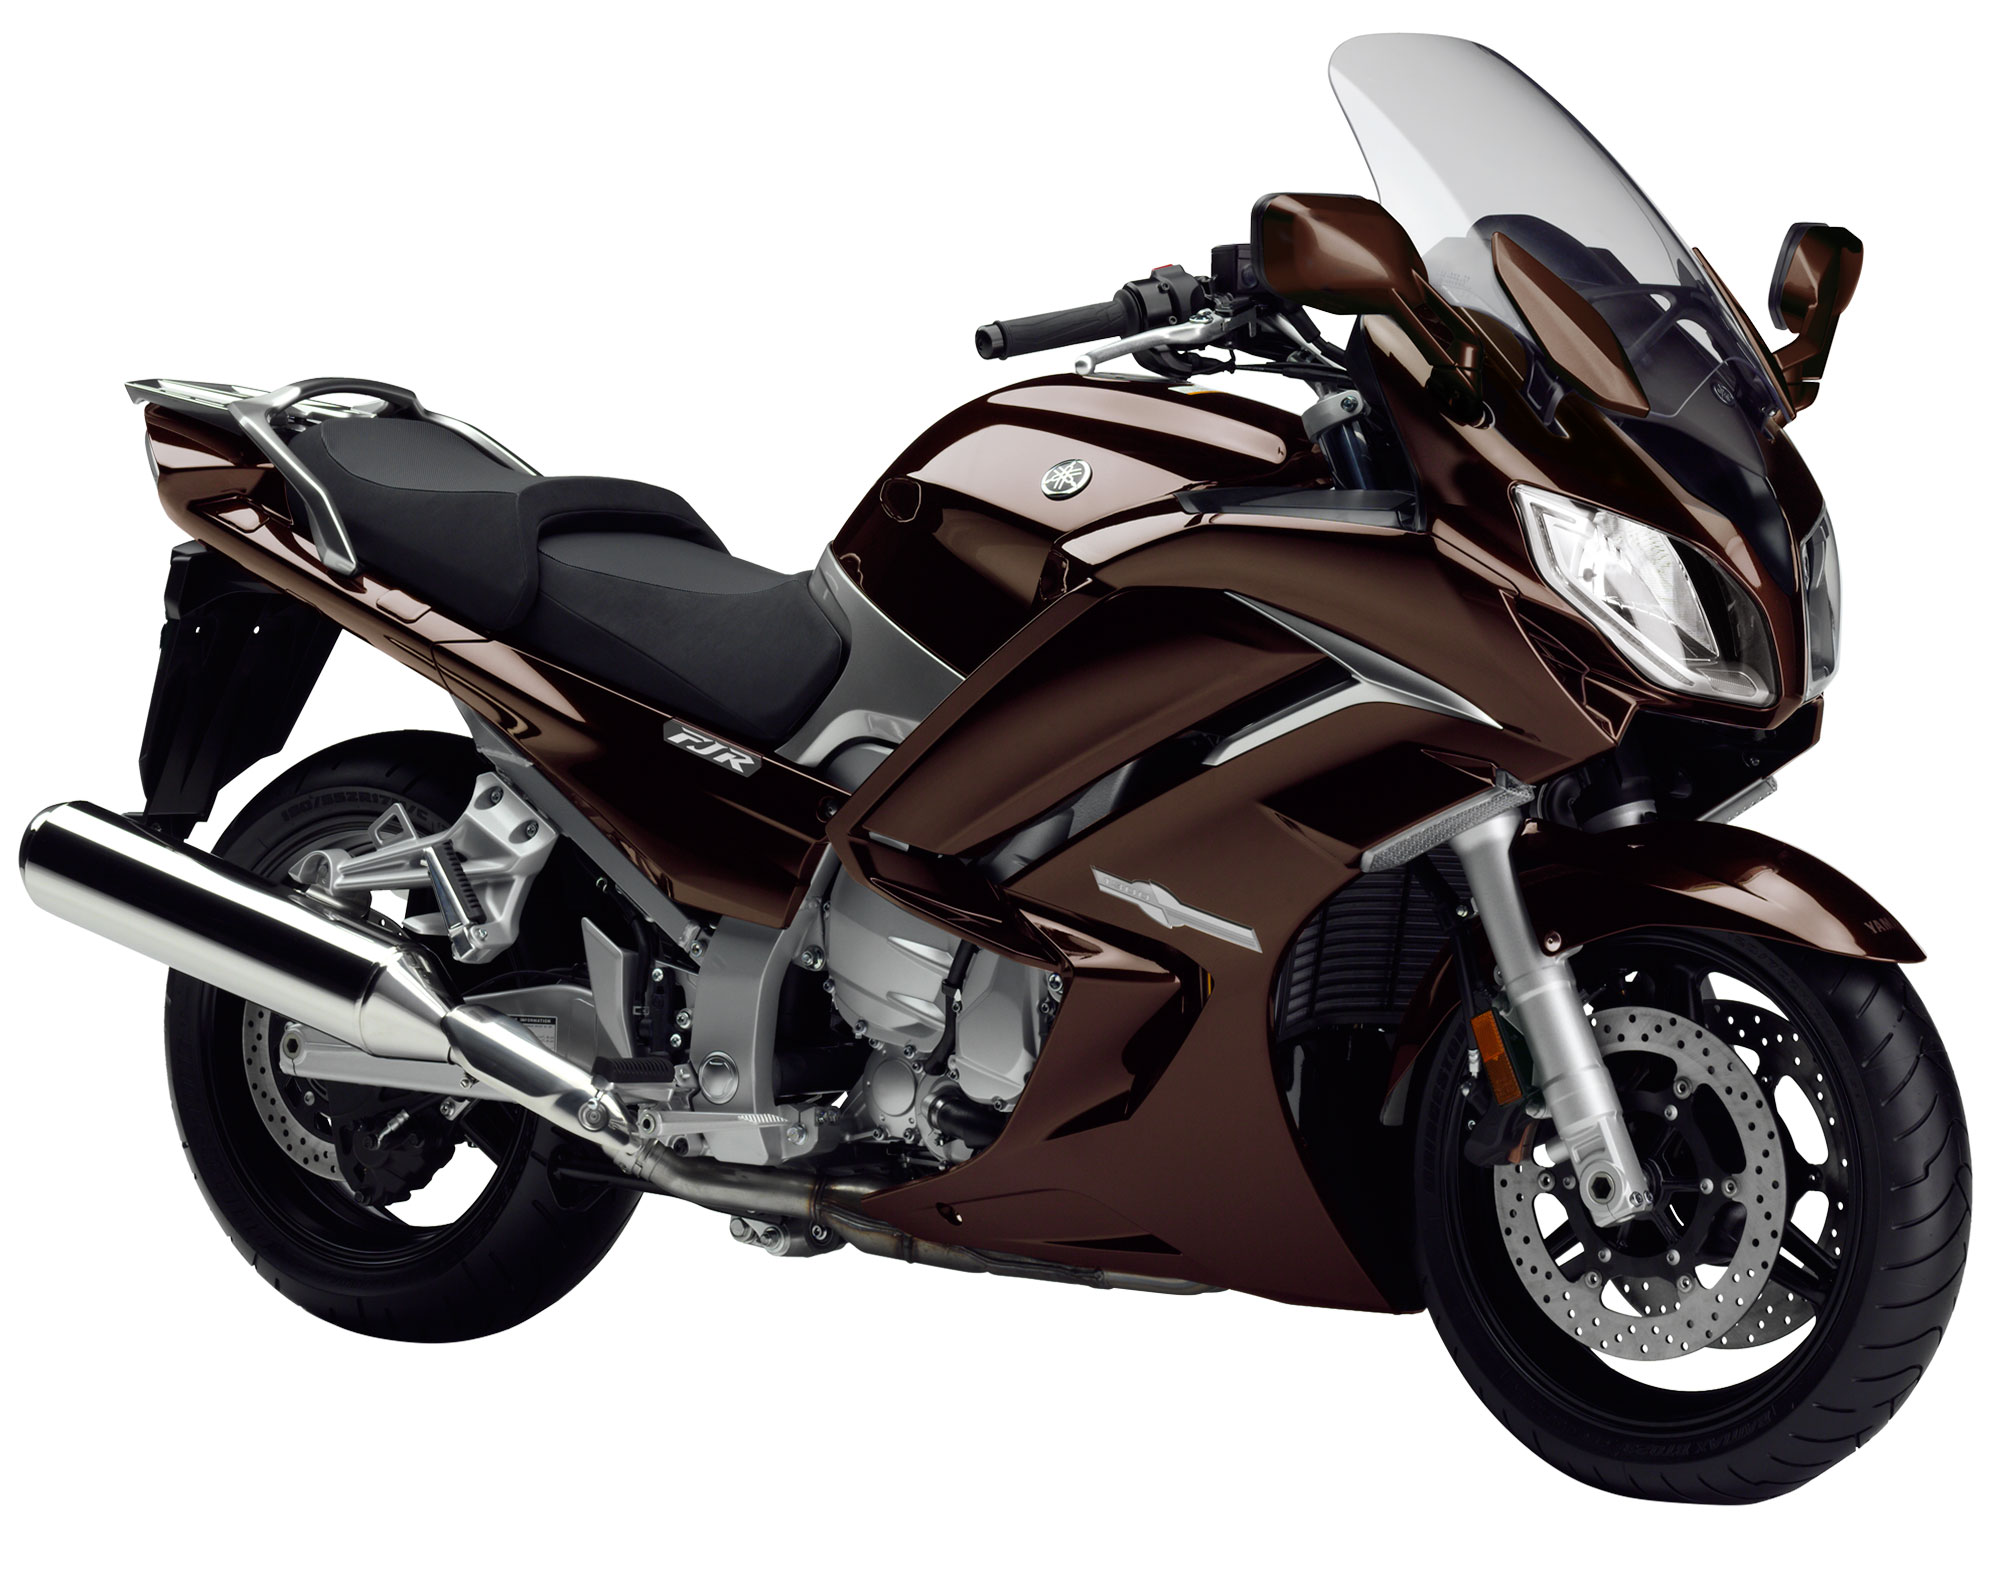 2014 yamaha fjr1300 review. Black Bedroom Furniture Sets. Home Design Ideas